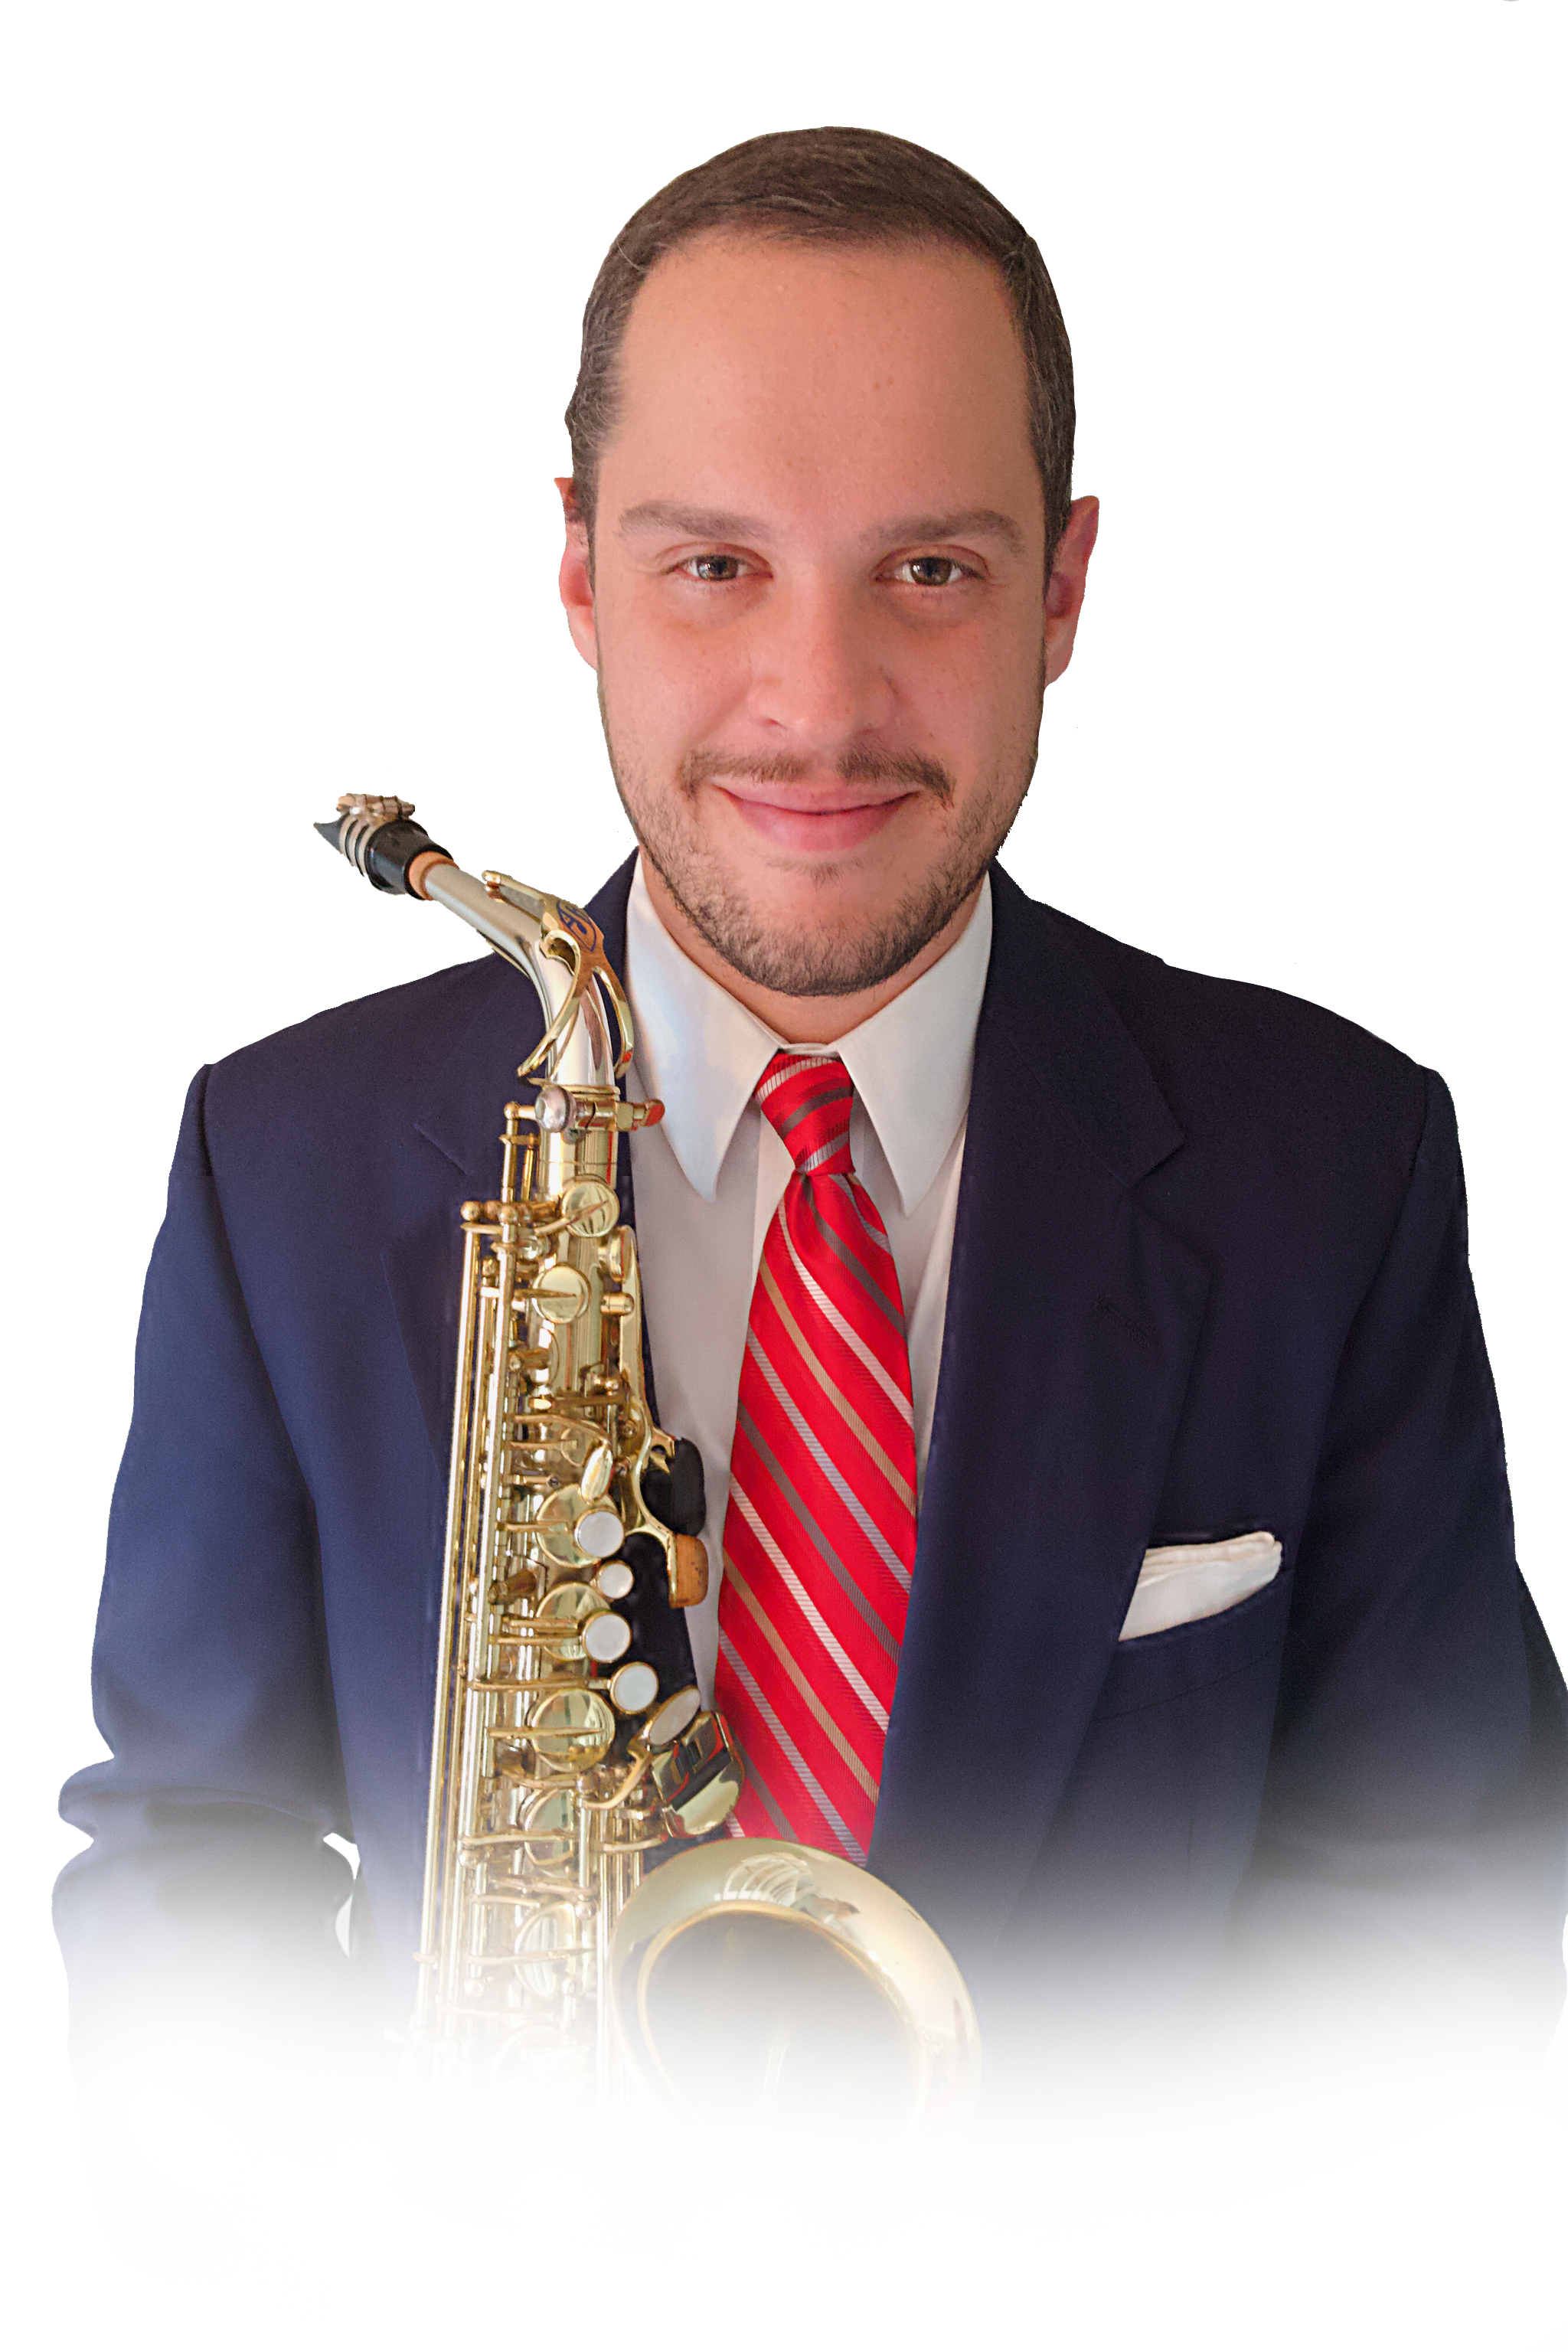 Saxophone Headshot Transparent.png